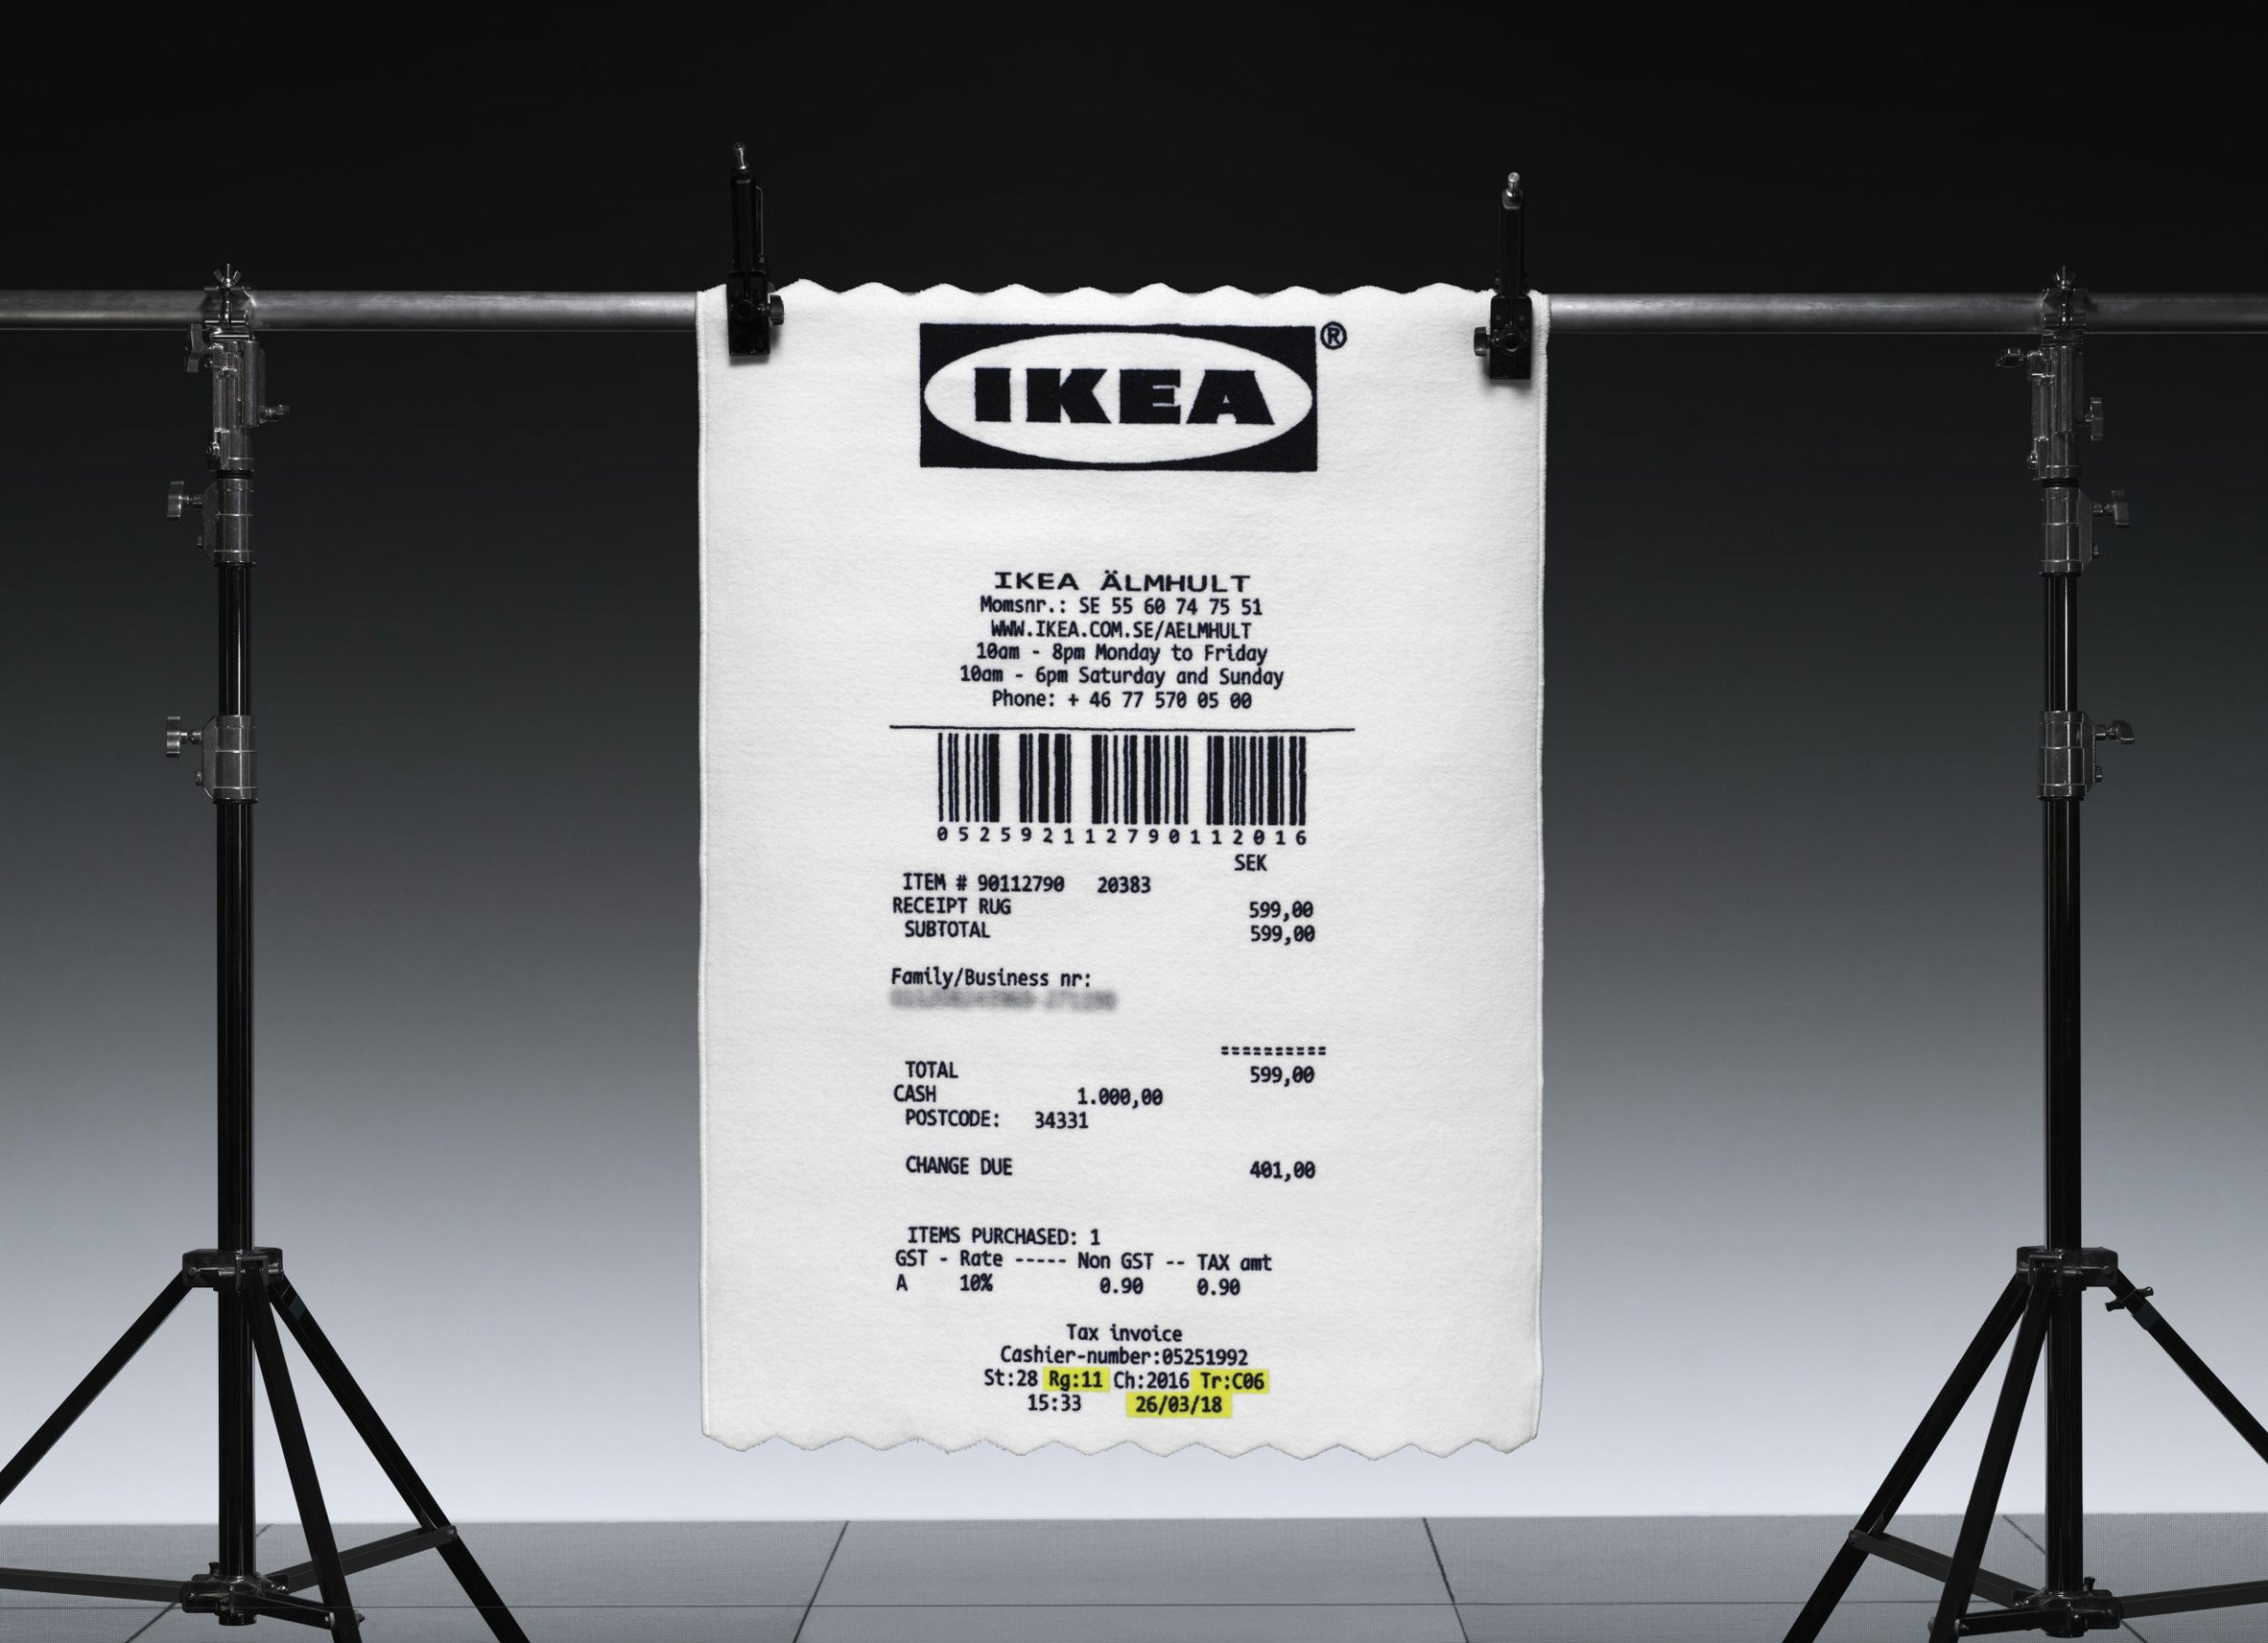 So, how about buying this Ikea shopping receipt rug for your living room?